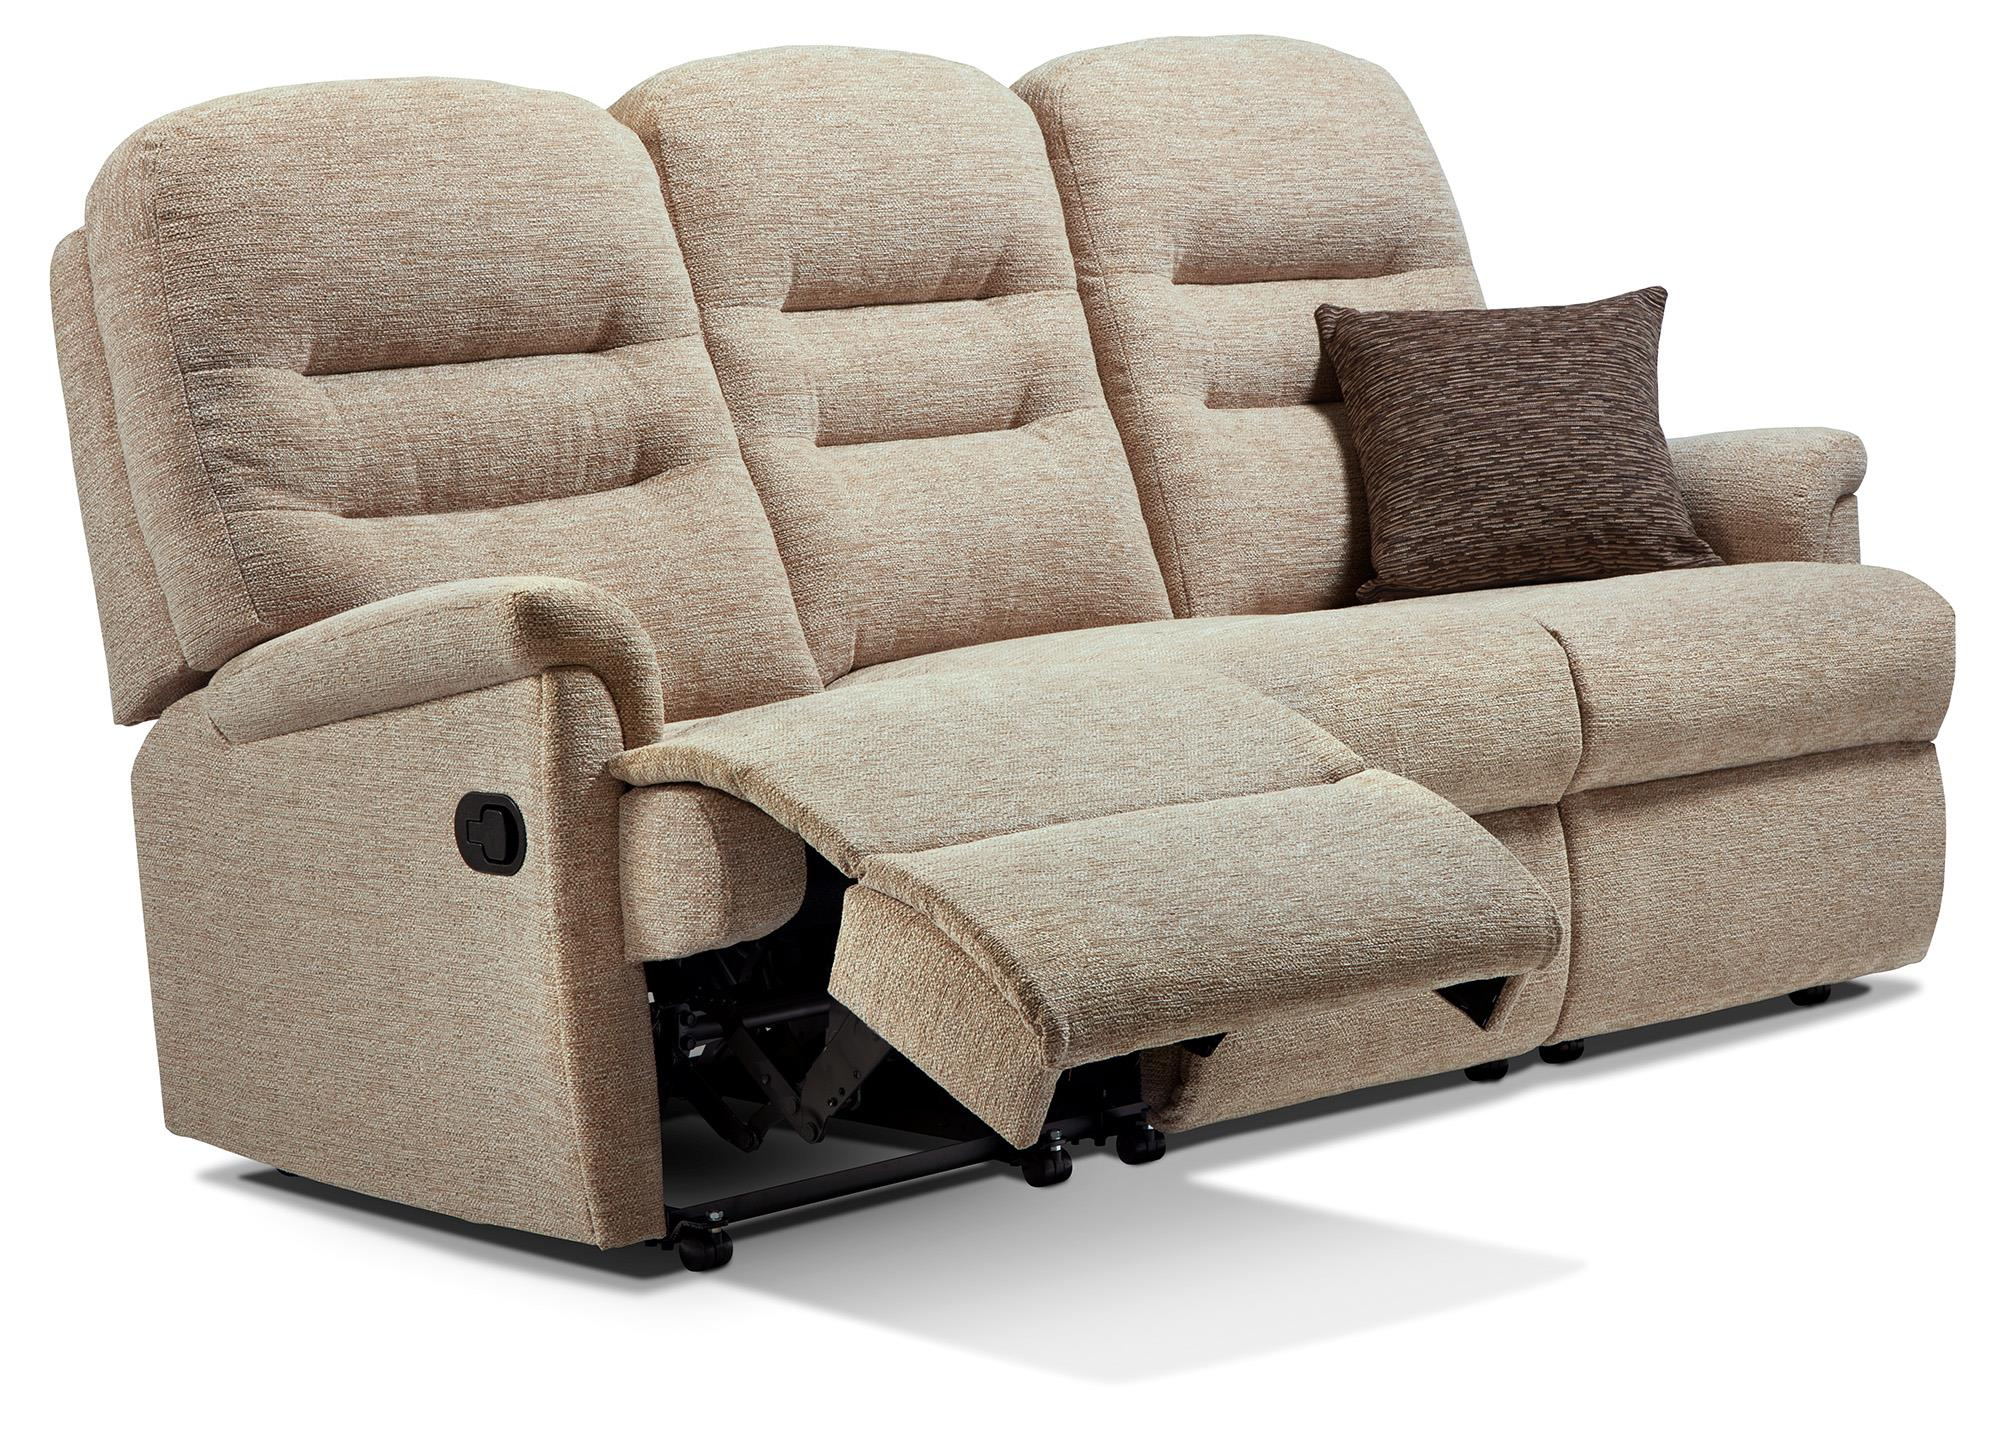 KESWICK - 3 Seater Reclining Settee & Powered Chair - by Sherborne